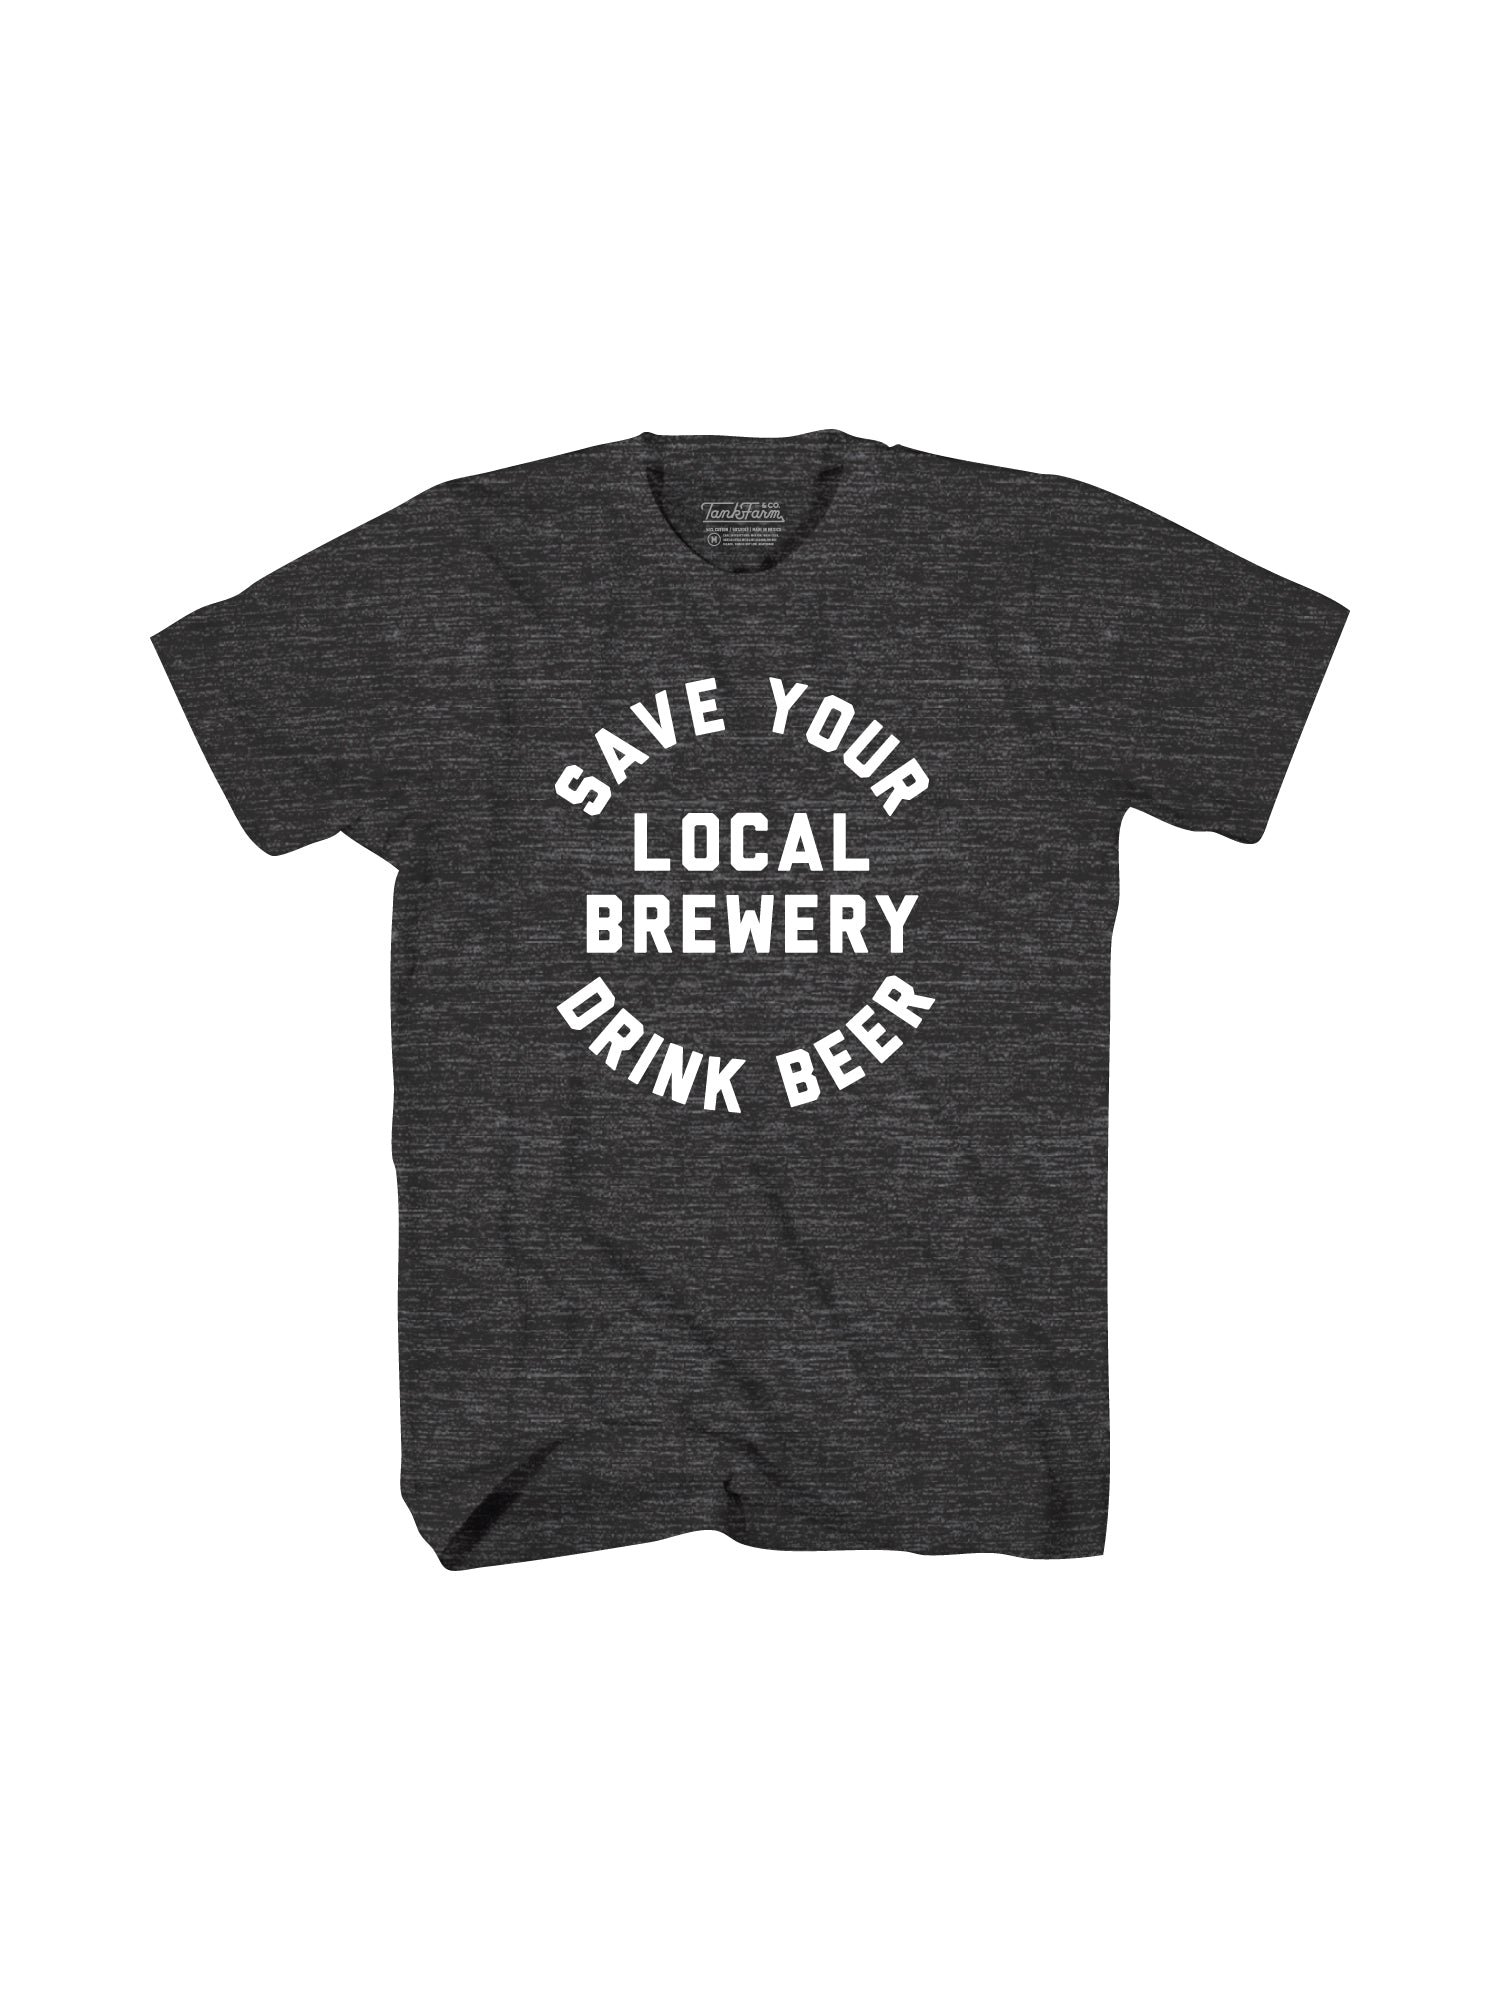 SAVE YOUR LOCAL BREWRY - BLACK ONYX - Tankfarm & Co.